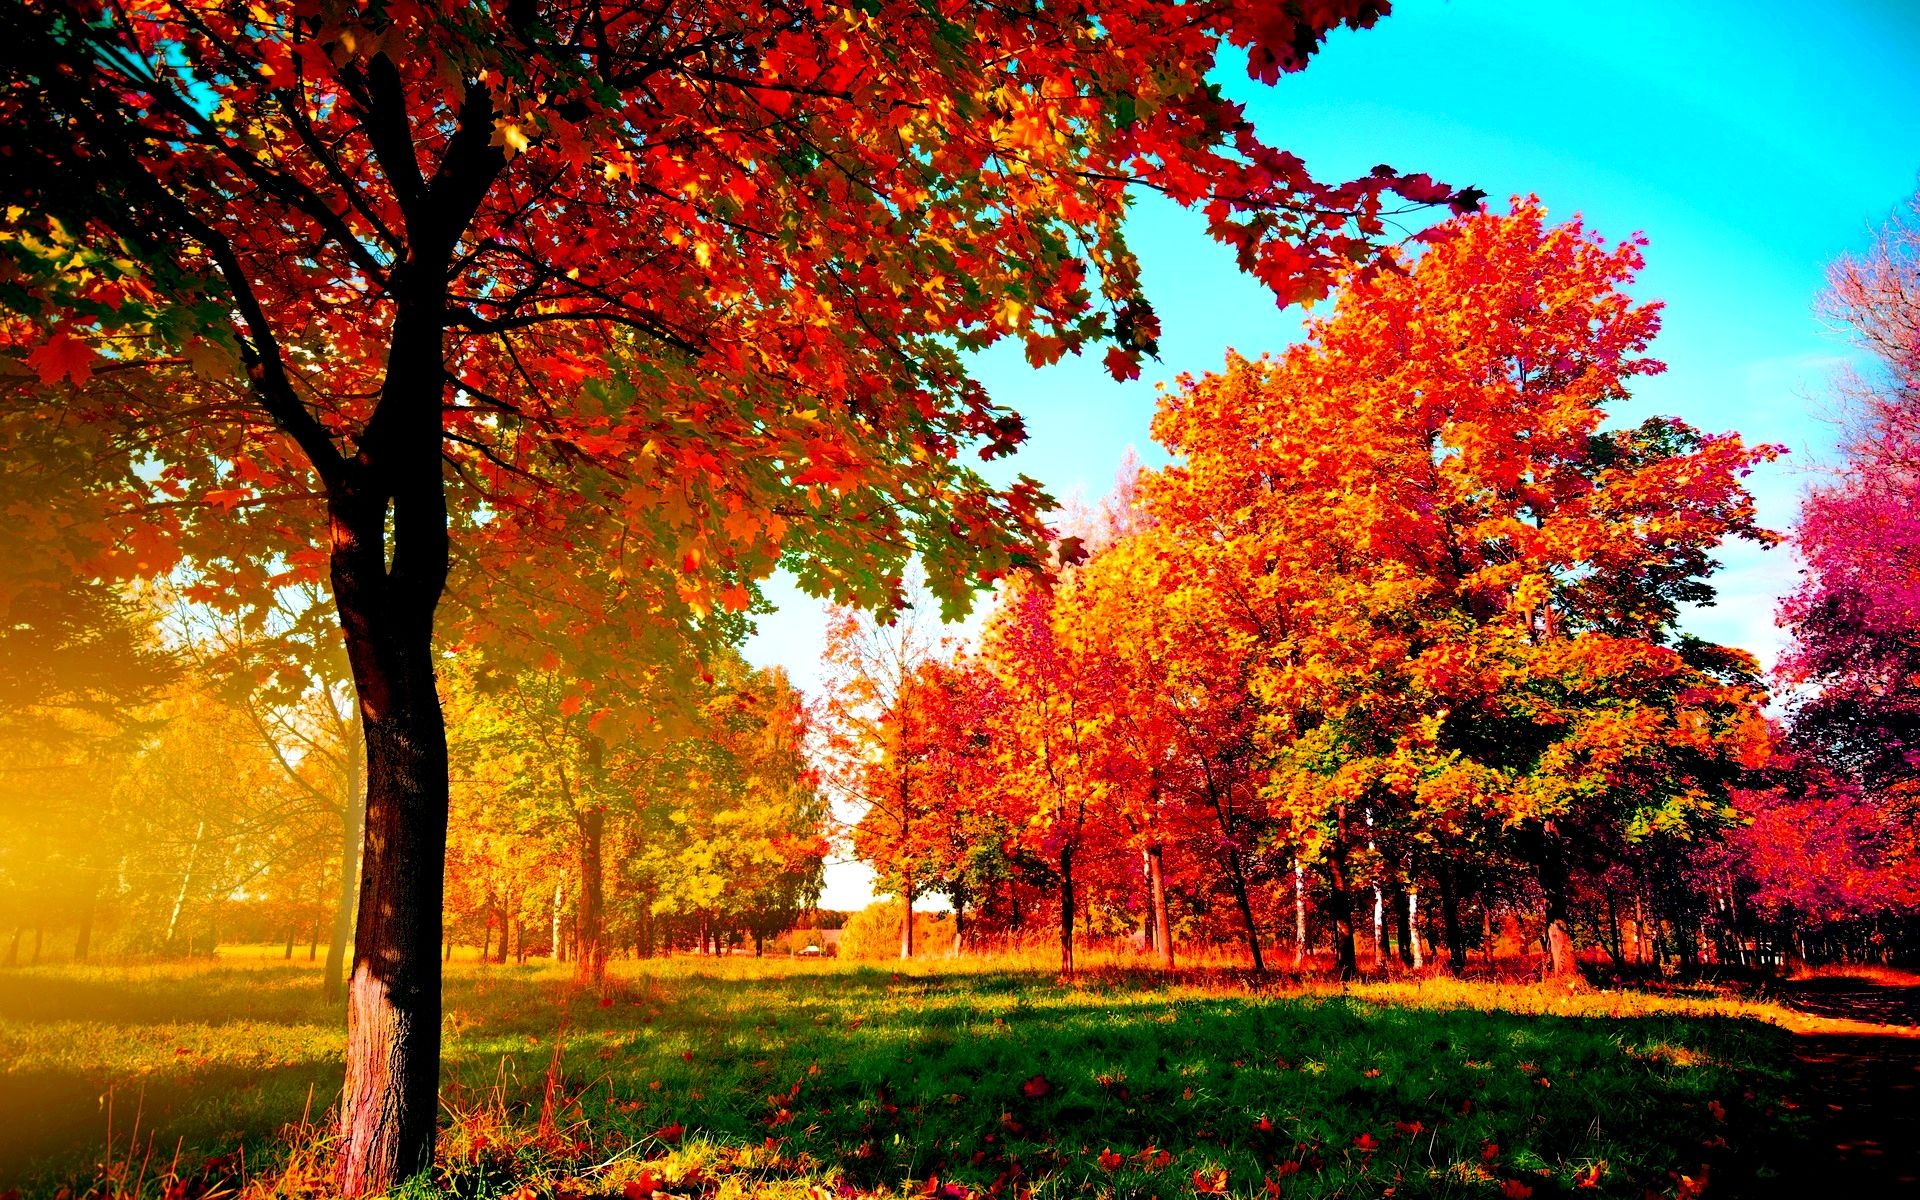 Autumn Trees Wallpaper Free G Pinterest 3d Wallpaper